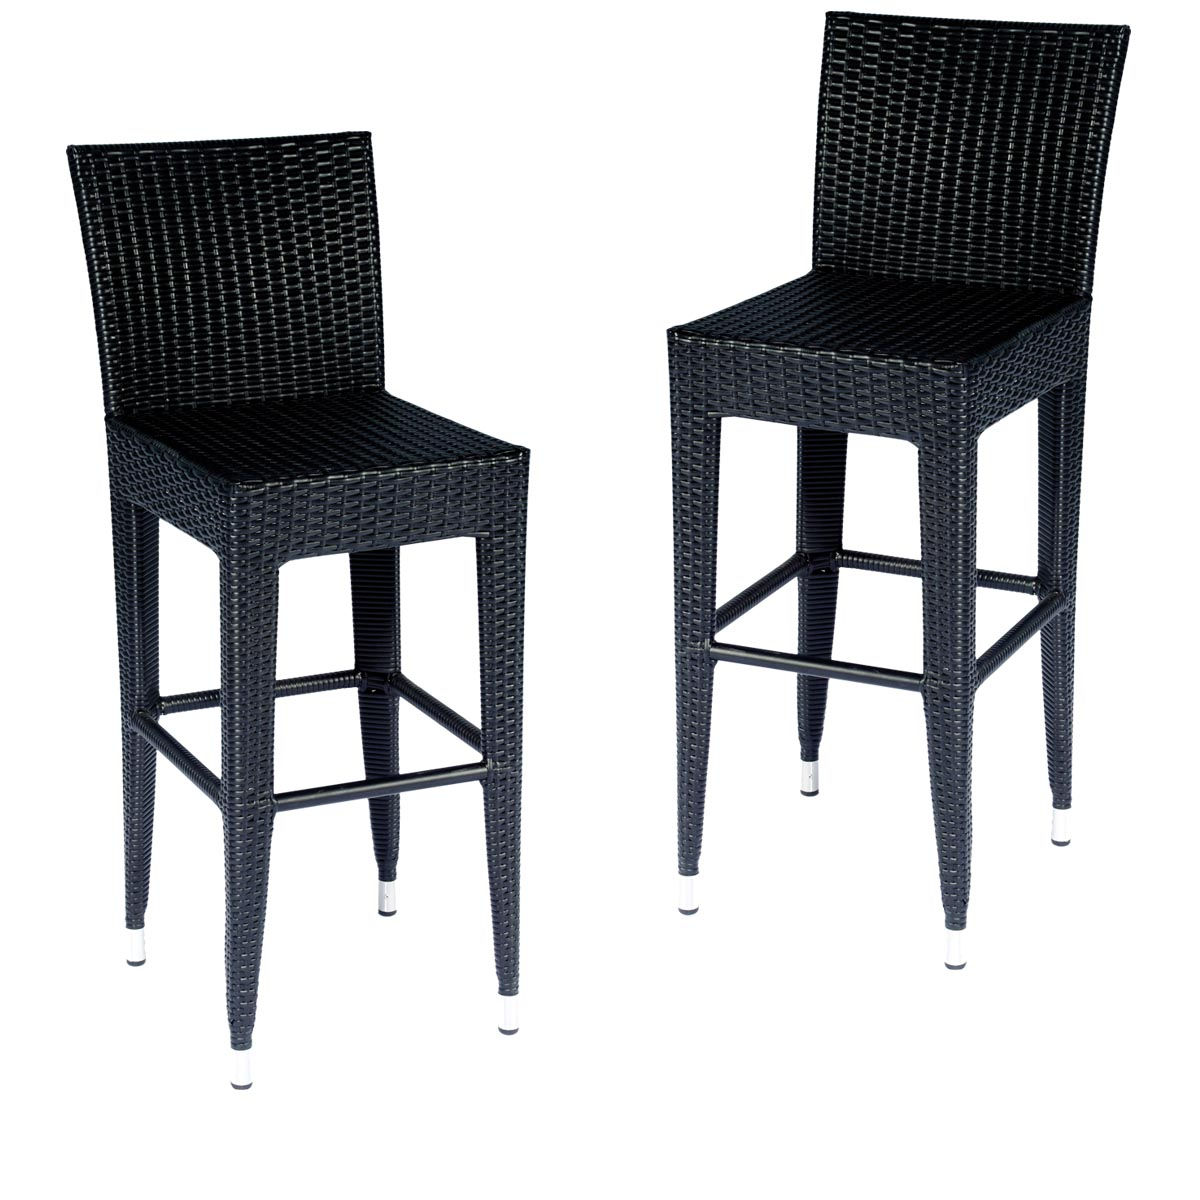 tabouret de bar de jardin maison et mobilier d 39 int rieur. Black Bedroom Furniture Sets. Home Design Ideas